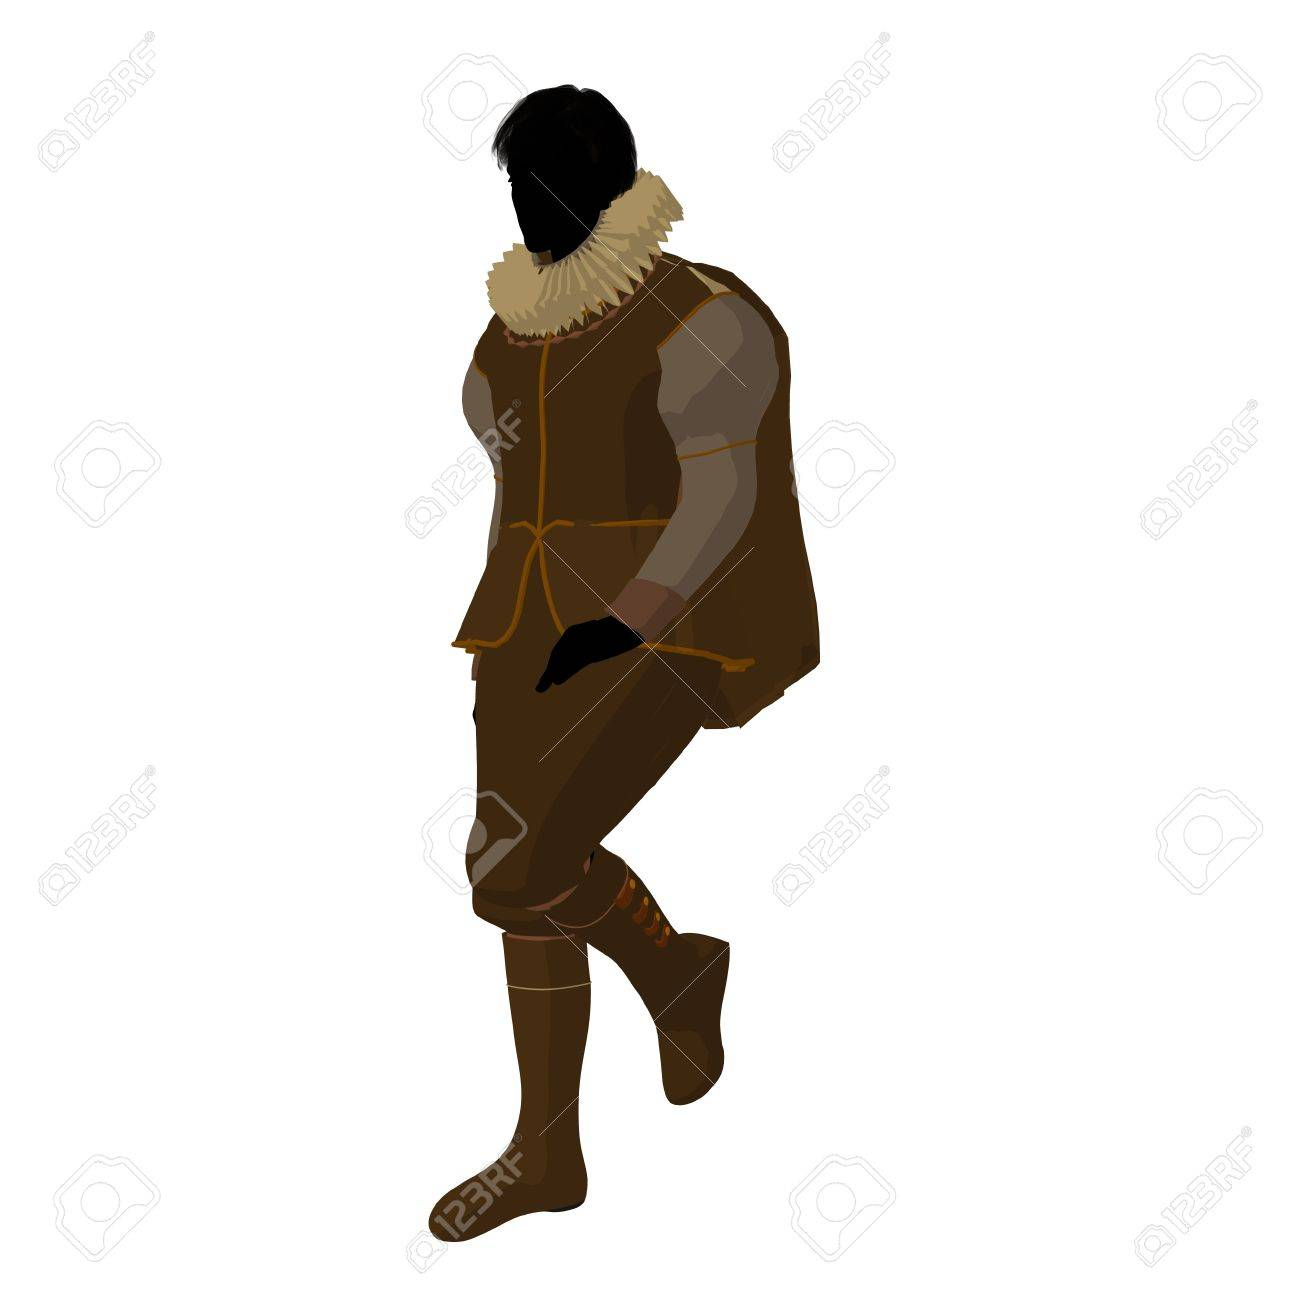 William Shakespeare silhouette on a white background Stock Photo - 9399891